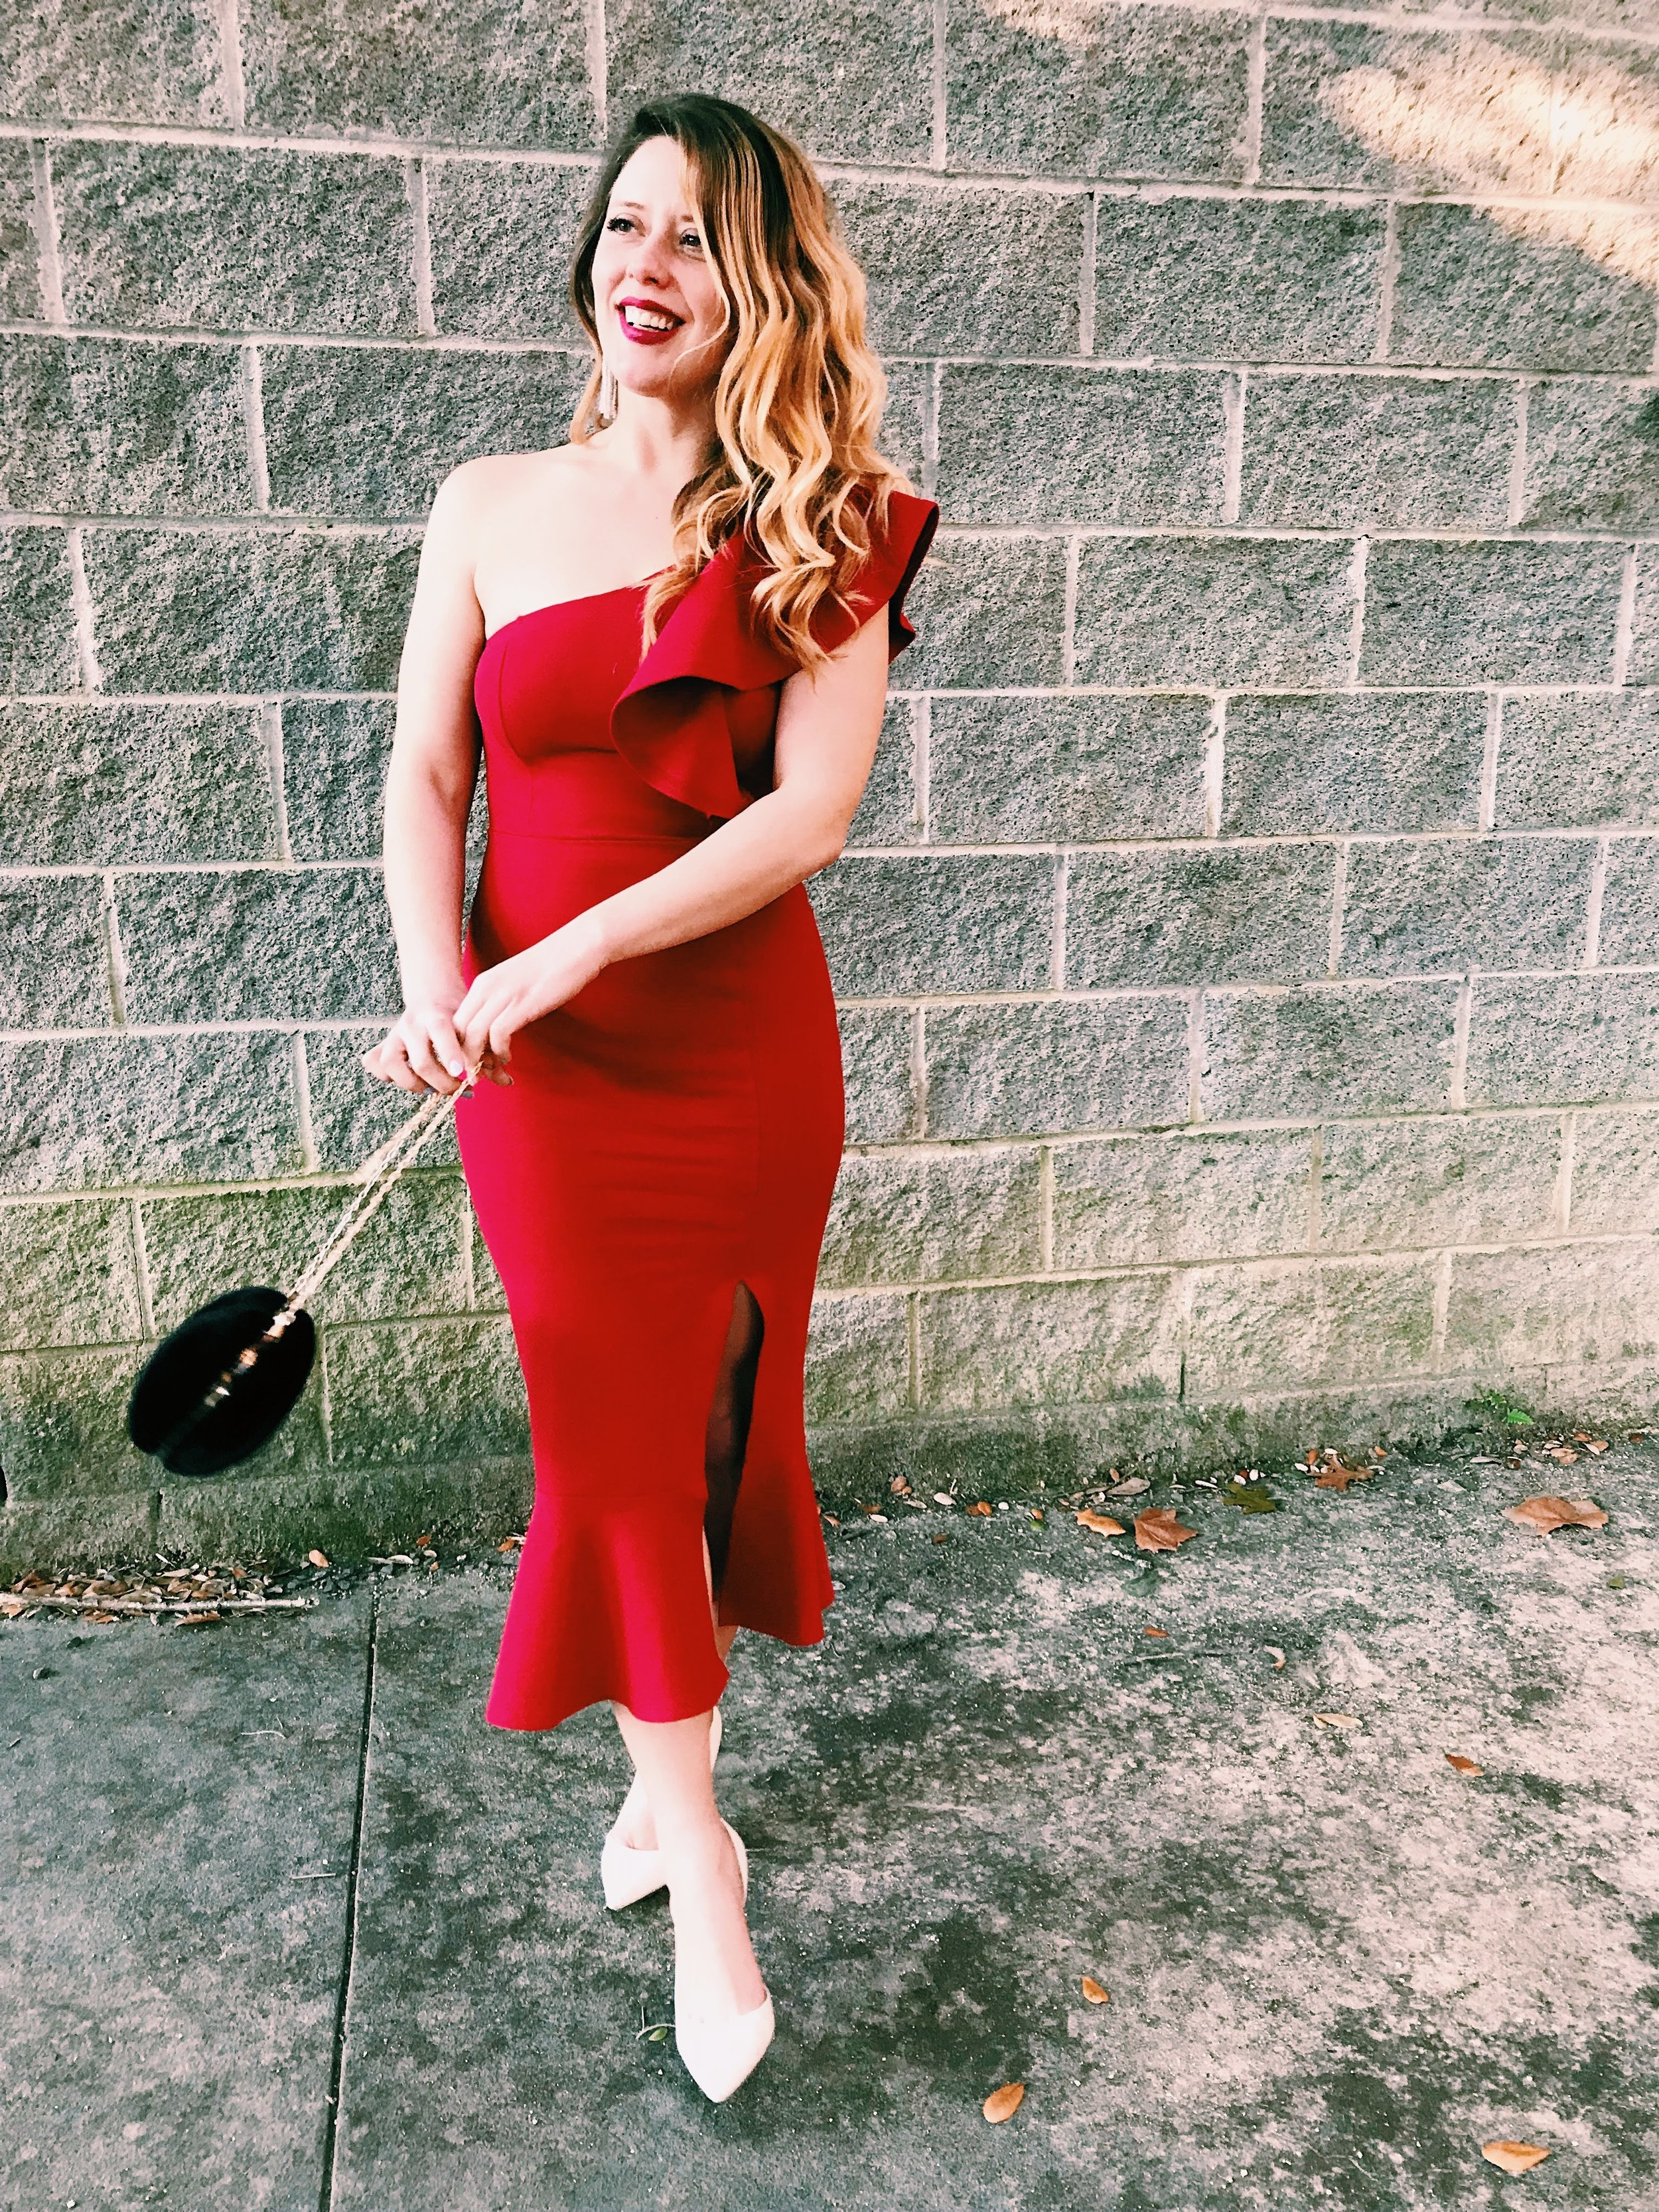 Three Heel Clicks - How to Go All Out Glam for Valentine's Day (7).jpg